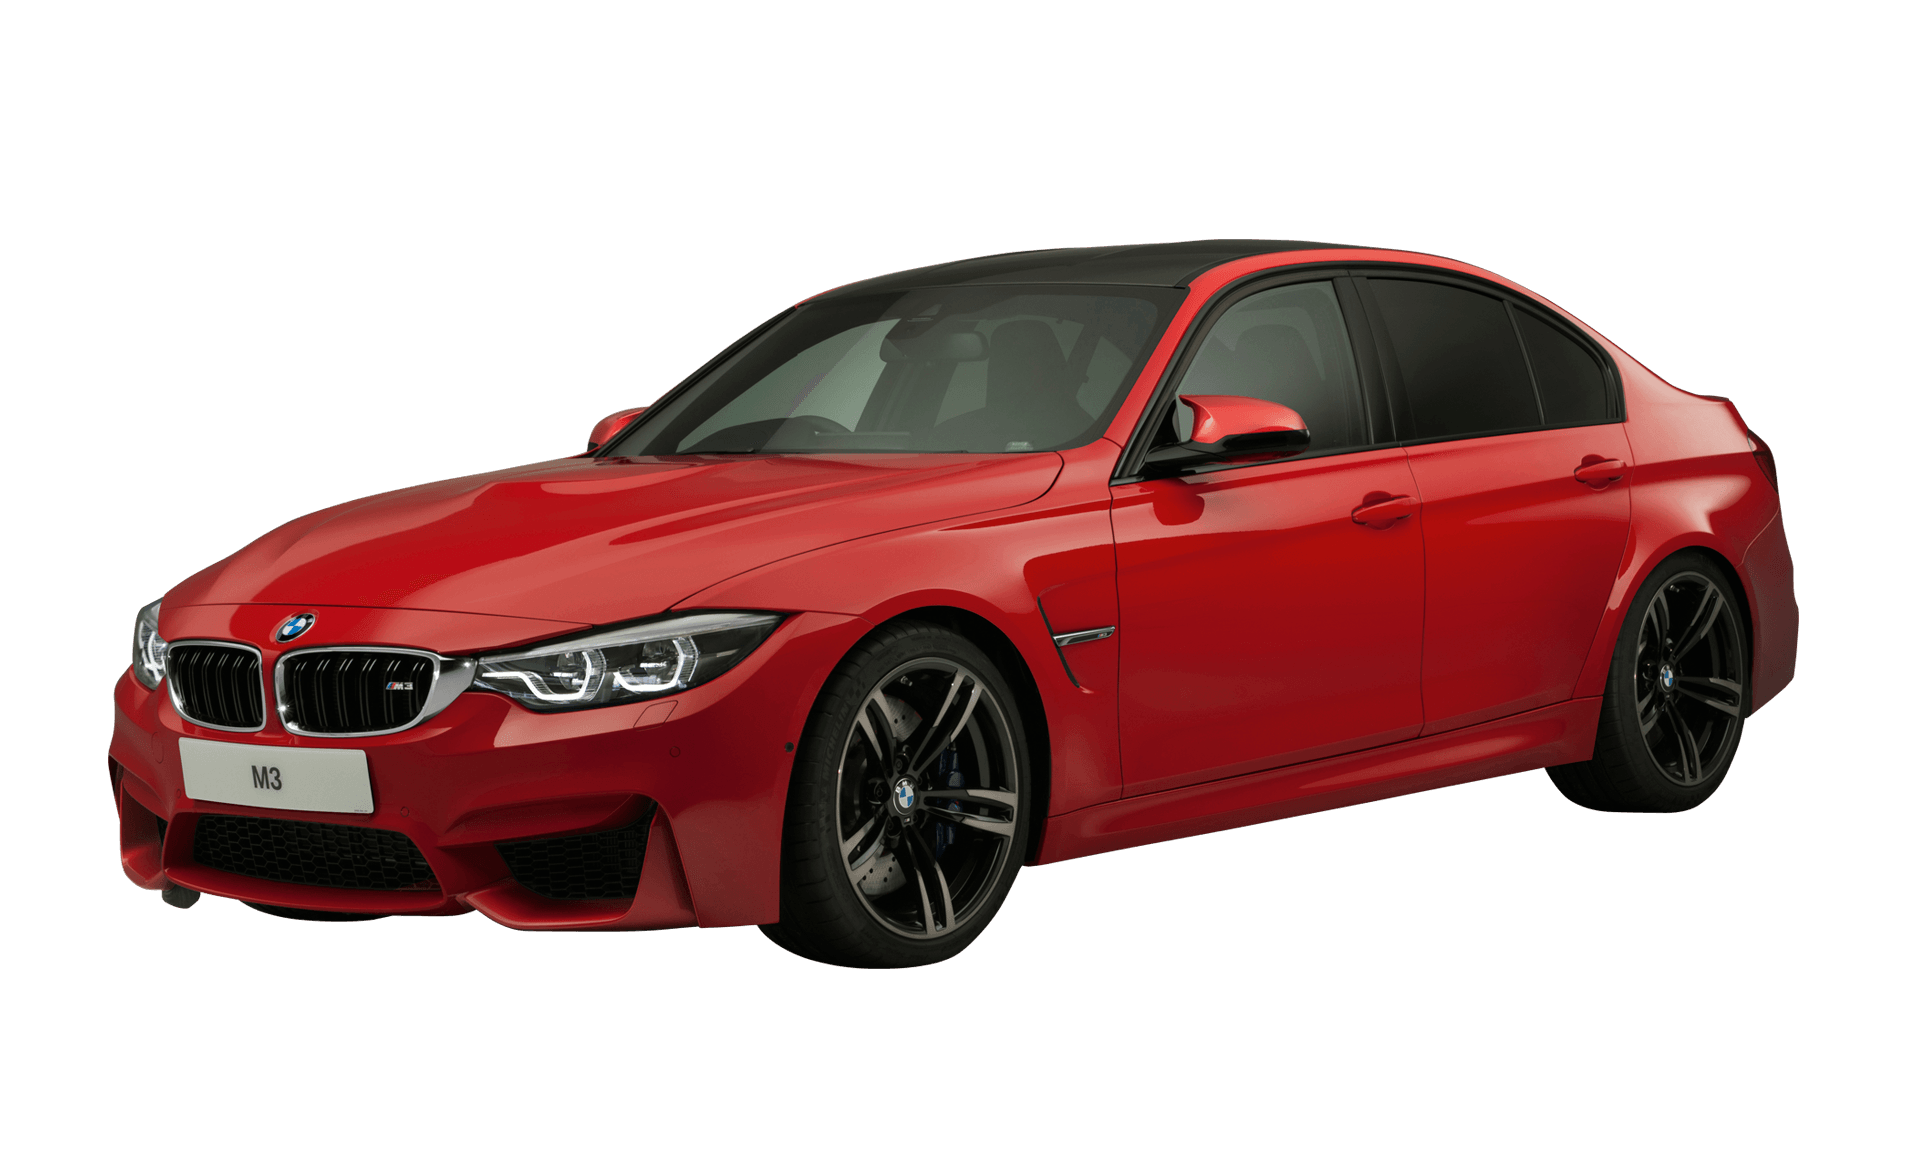 83 The 2019 BMW M4 Colors Model